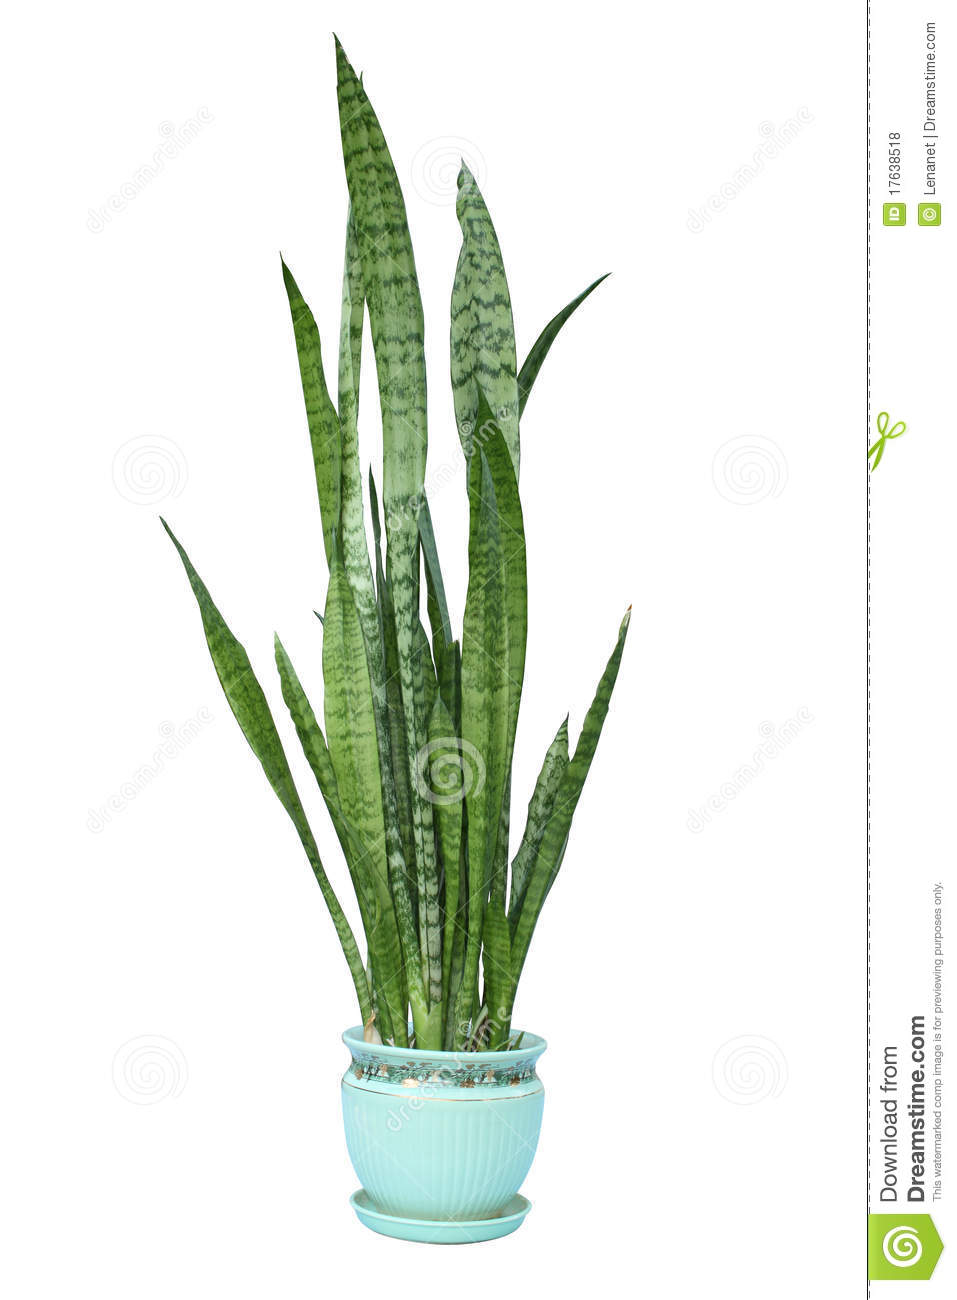 sansevieria trifasciata green plant stock photo image 17638518. Black Bedroom Furniture Sets. Home Design Ideas